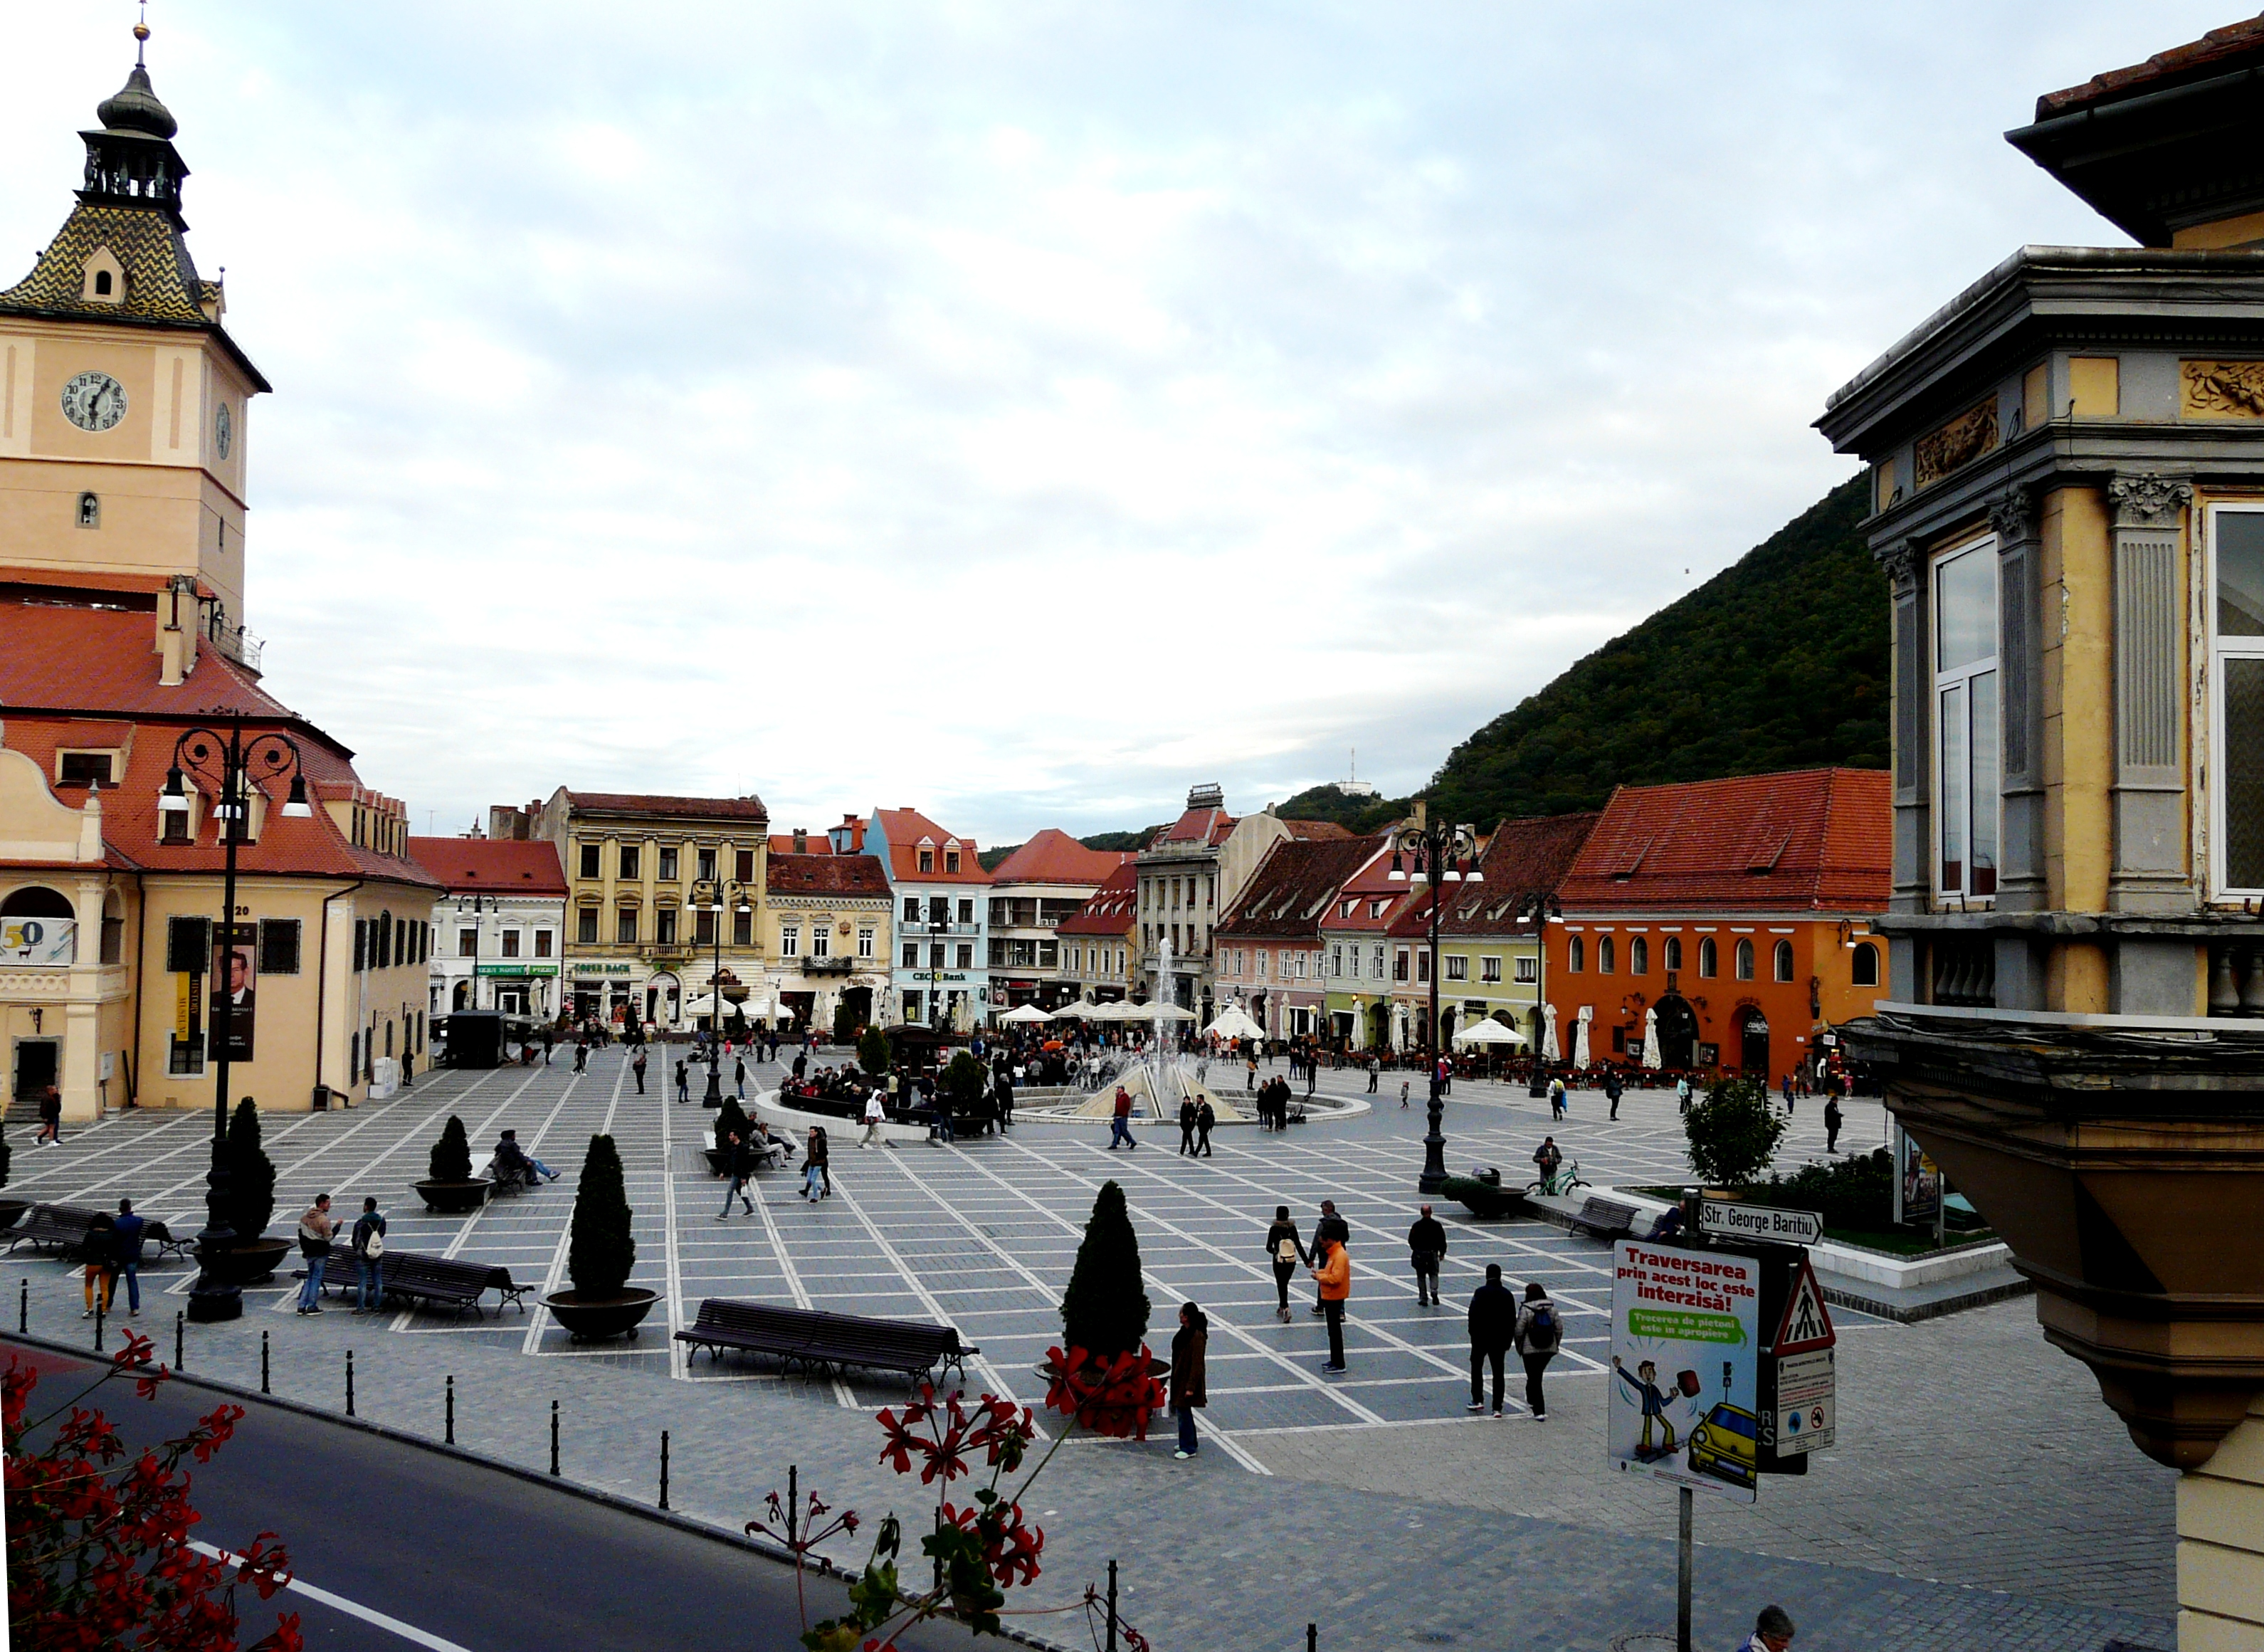 The main square in Brasov, originally built nine centuries ago, was rebuilt after a fire destroyed the walled city in 1689.